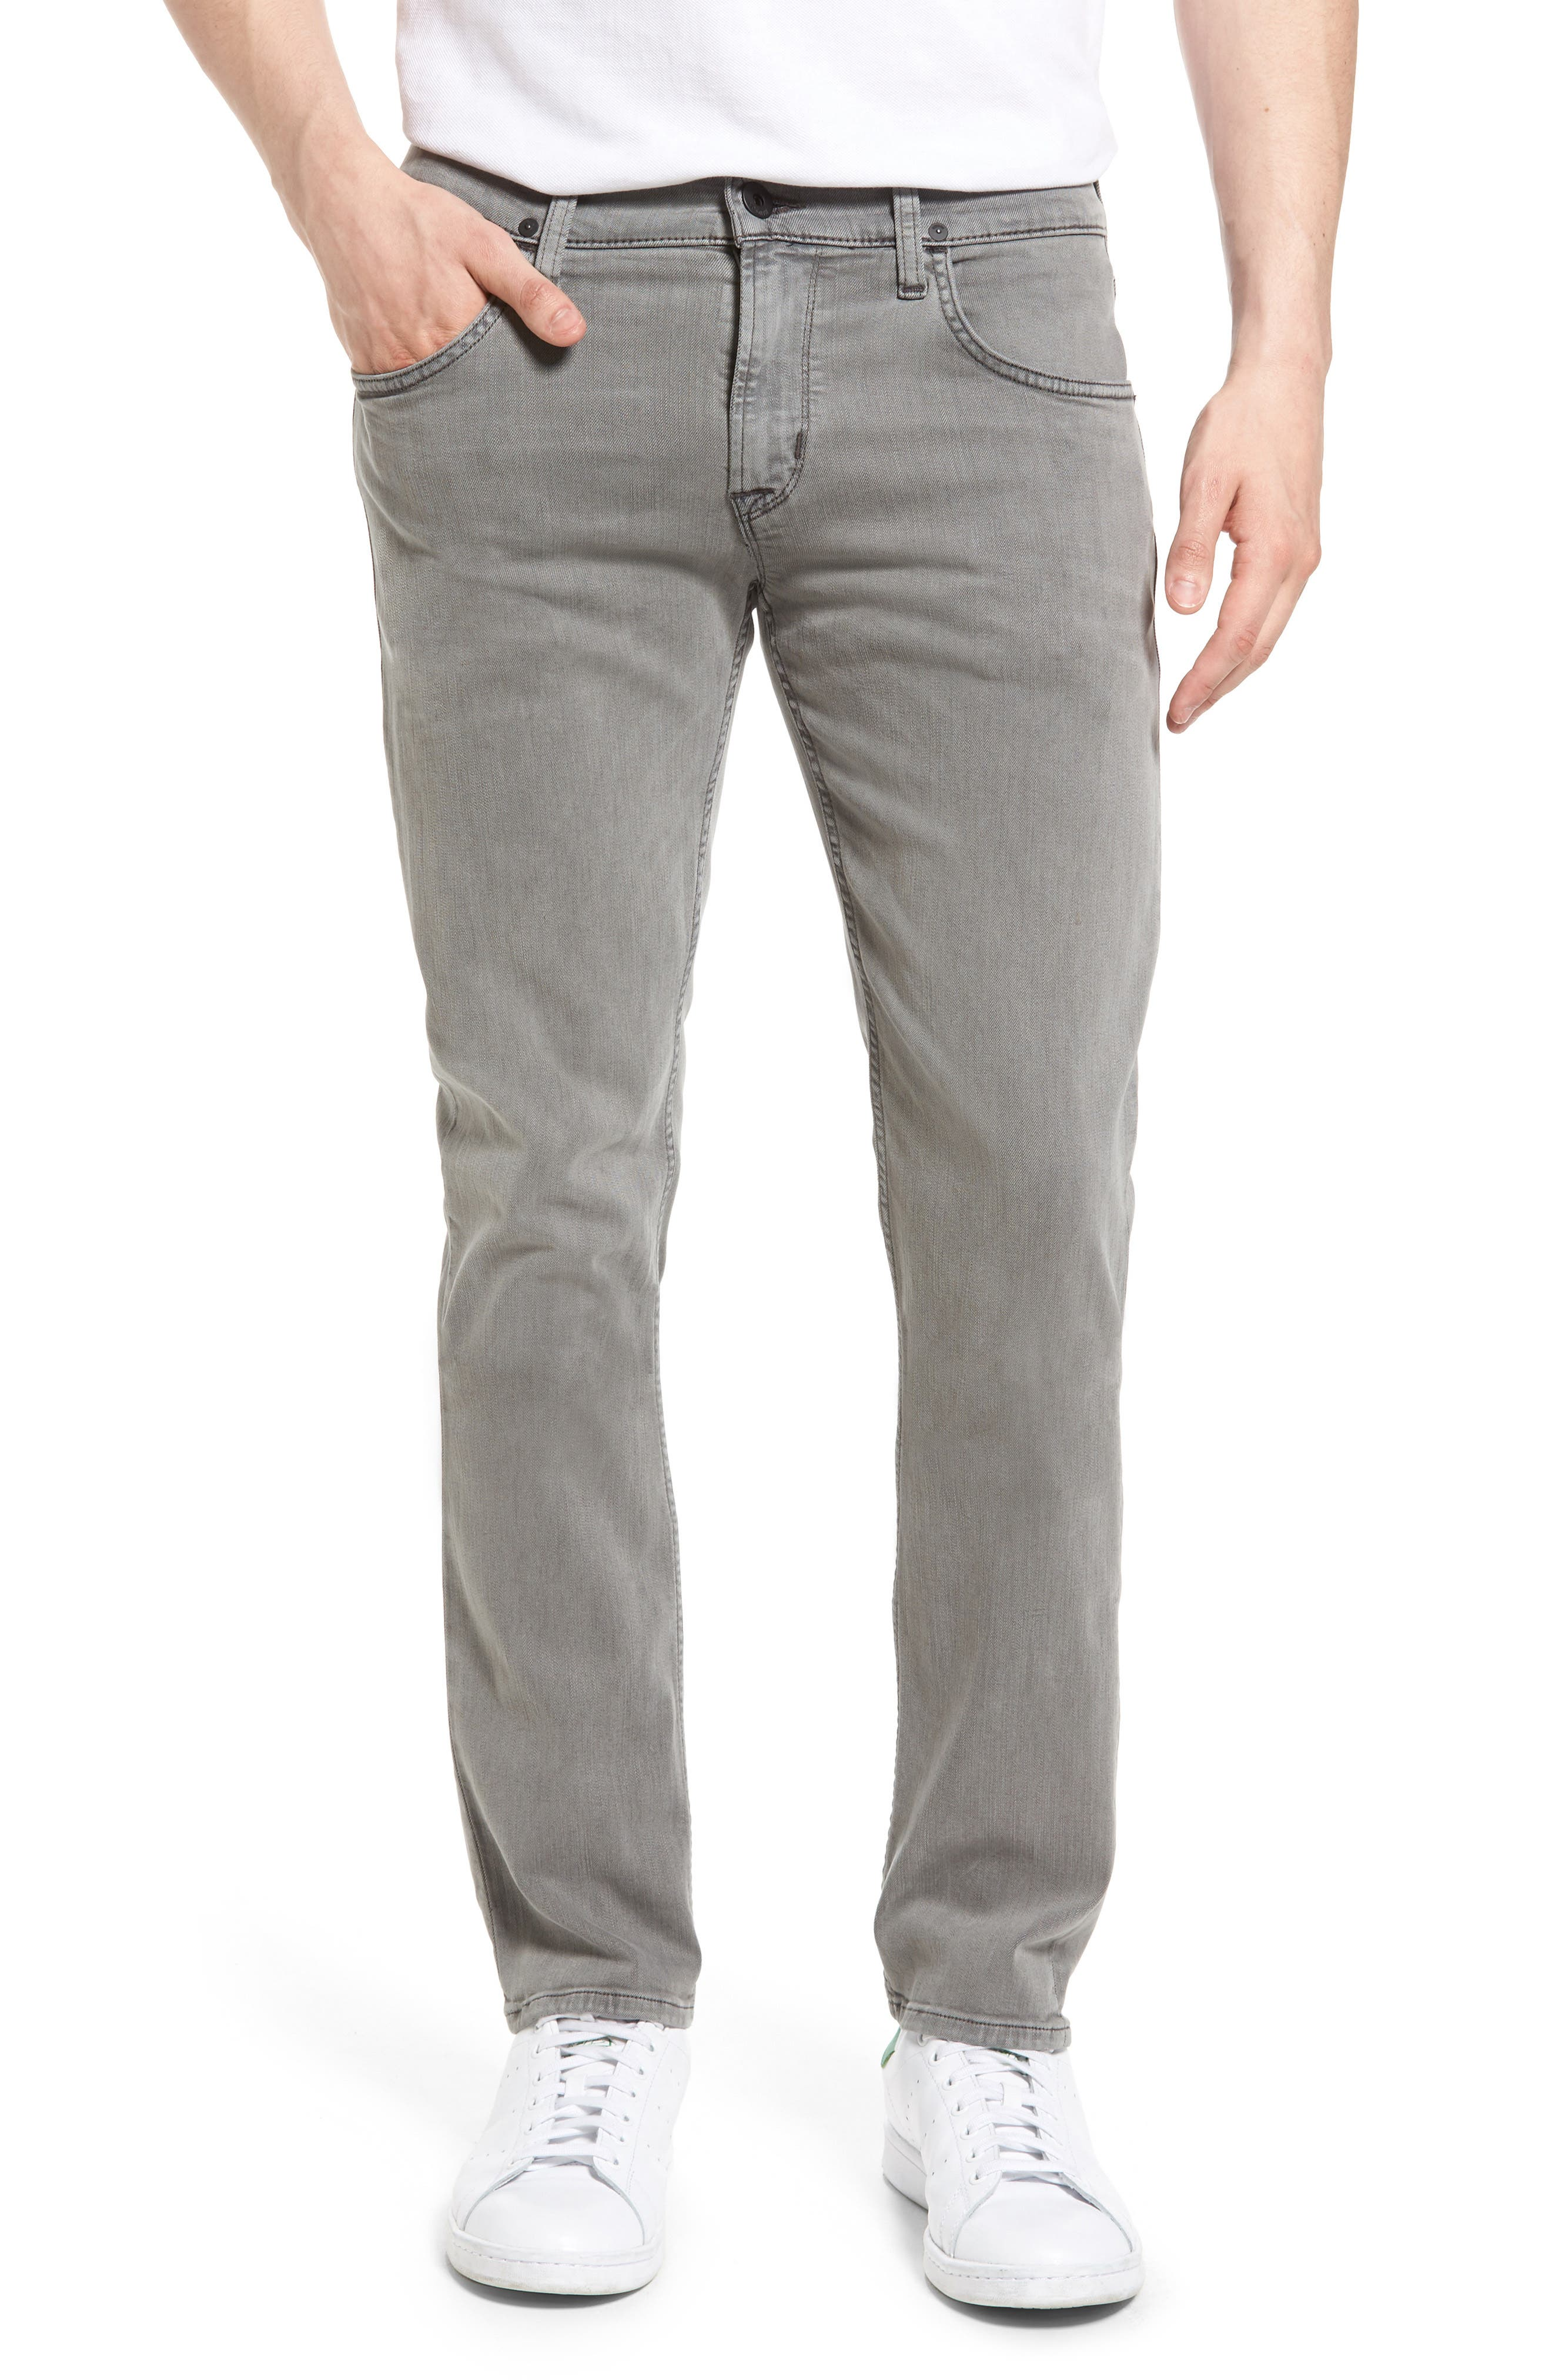 Blake Slim Fit Jeans,                         Main,                         color, Barriers